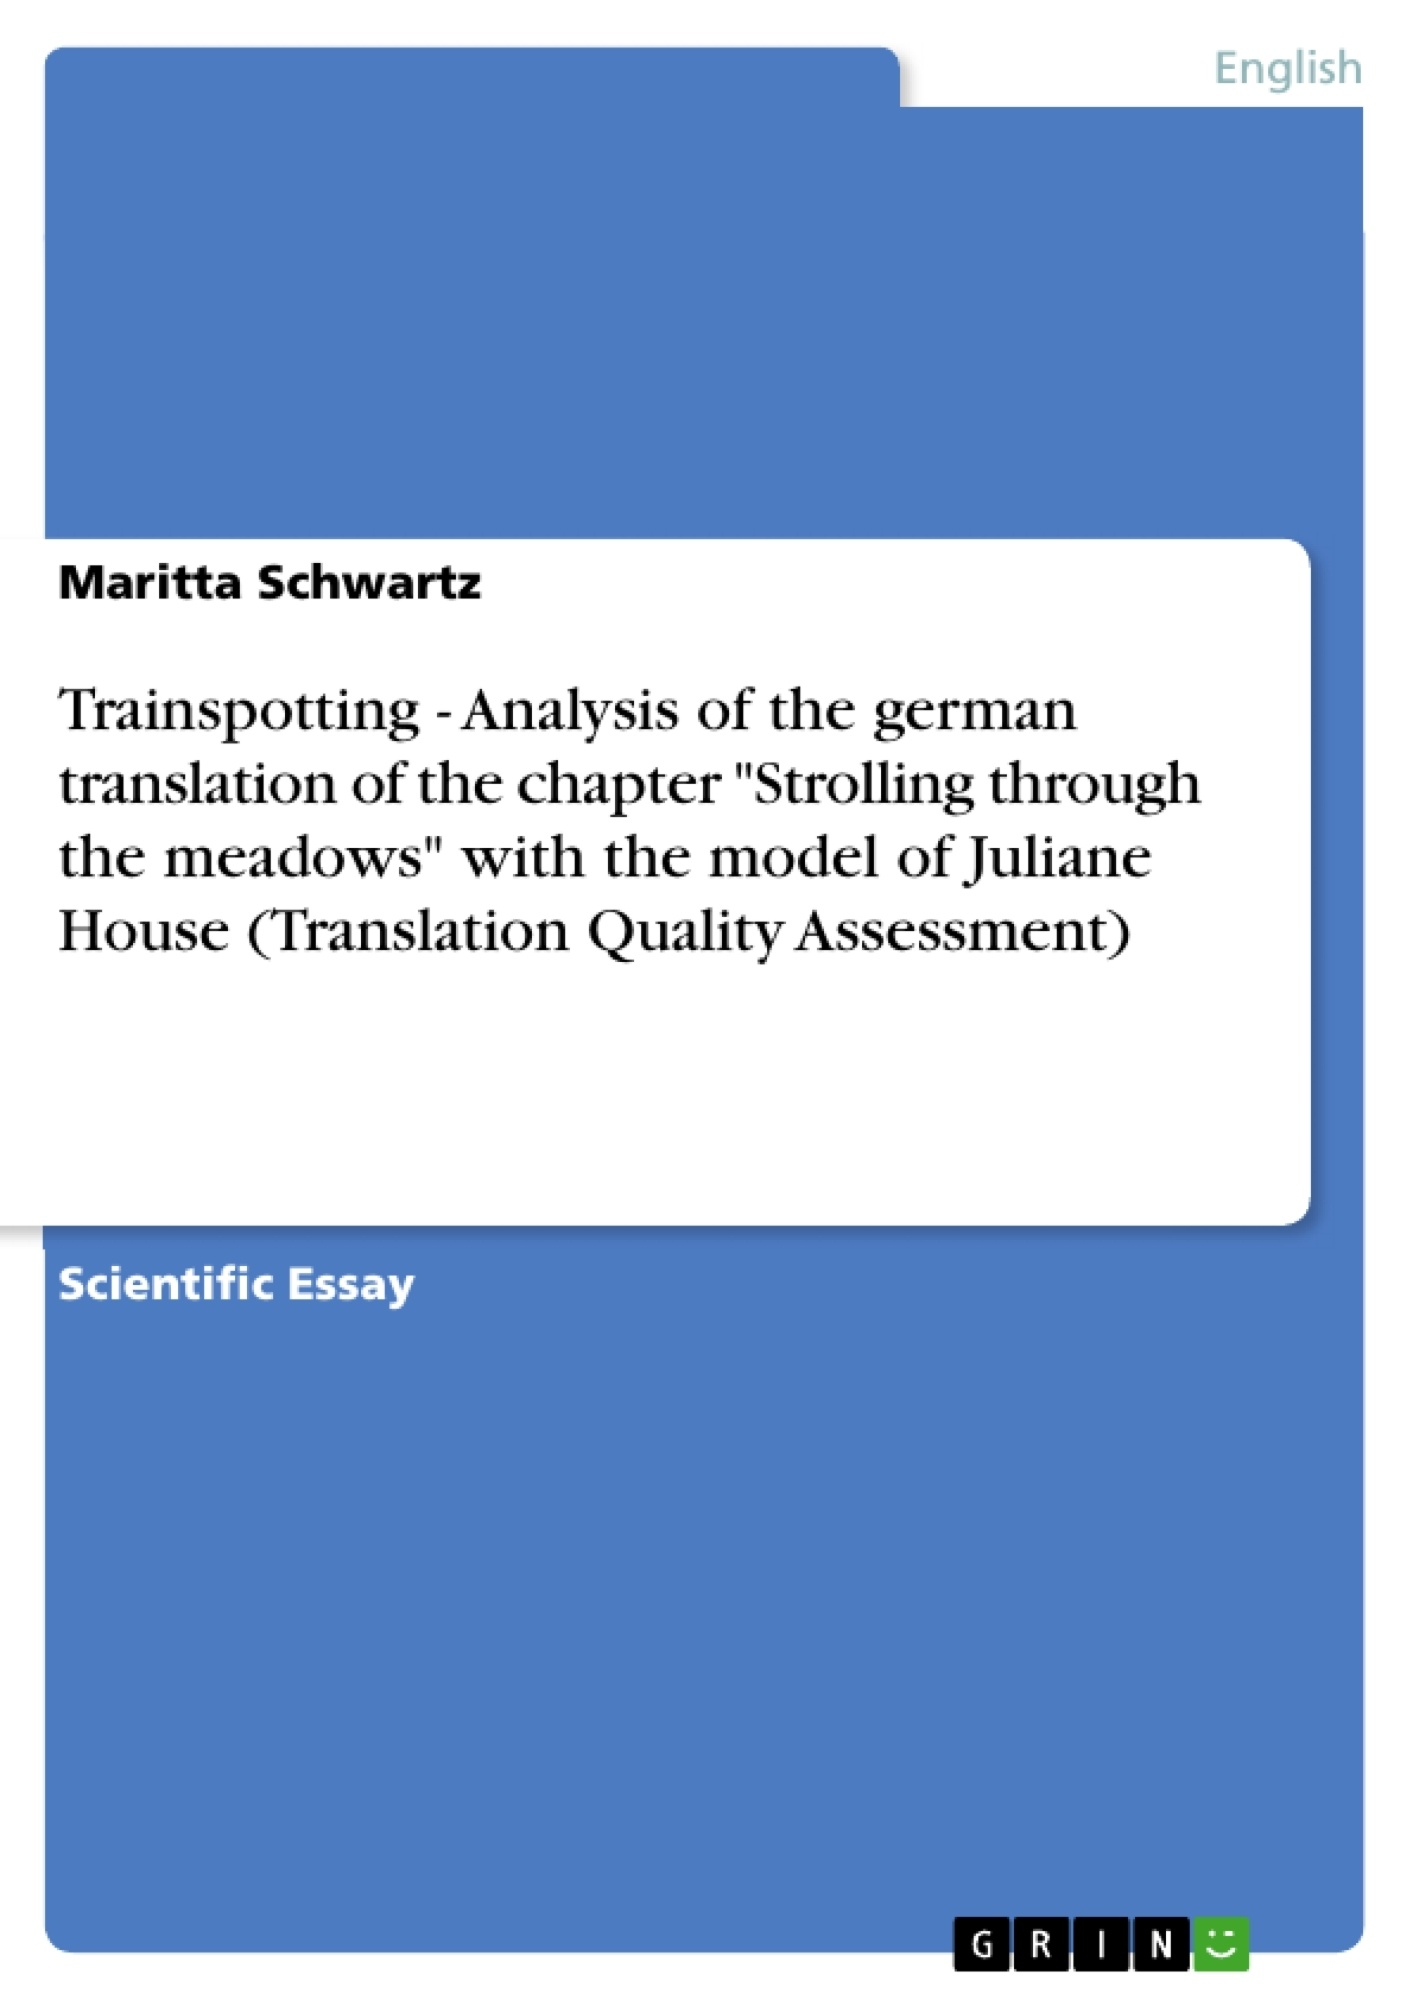 "Title: Trainspotting - Analysis of the german translation of the chapter  ""Strolling through the meadows""  with the model of Juliane House (Translation Quality Assessment)"